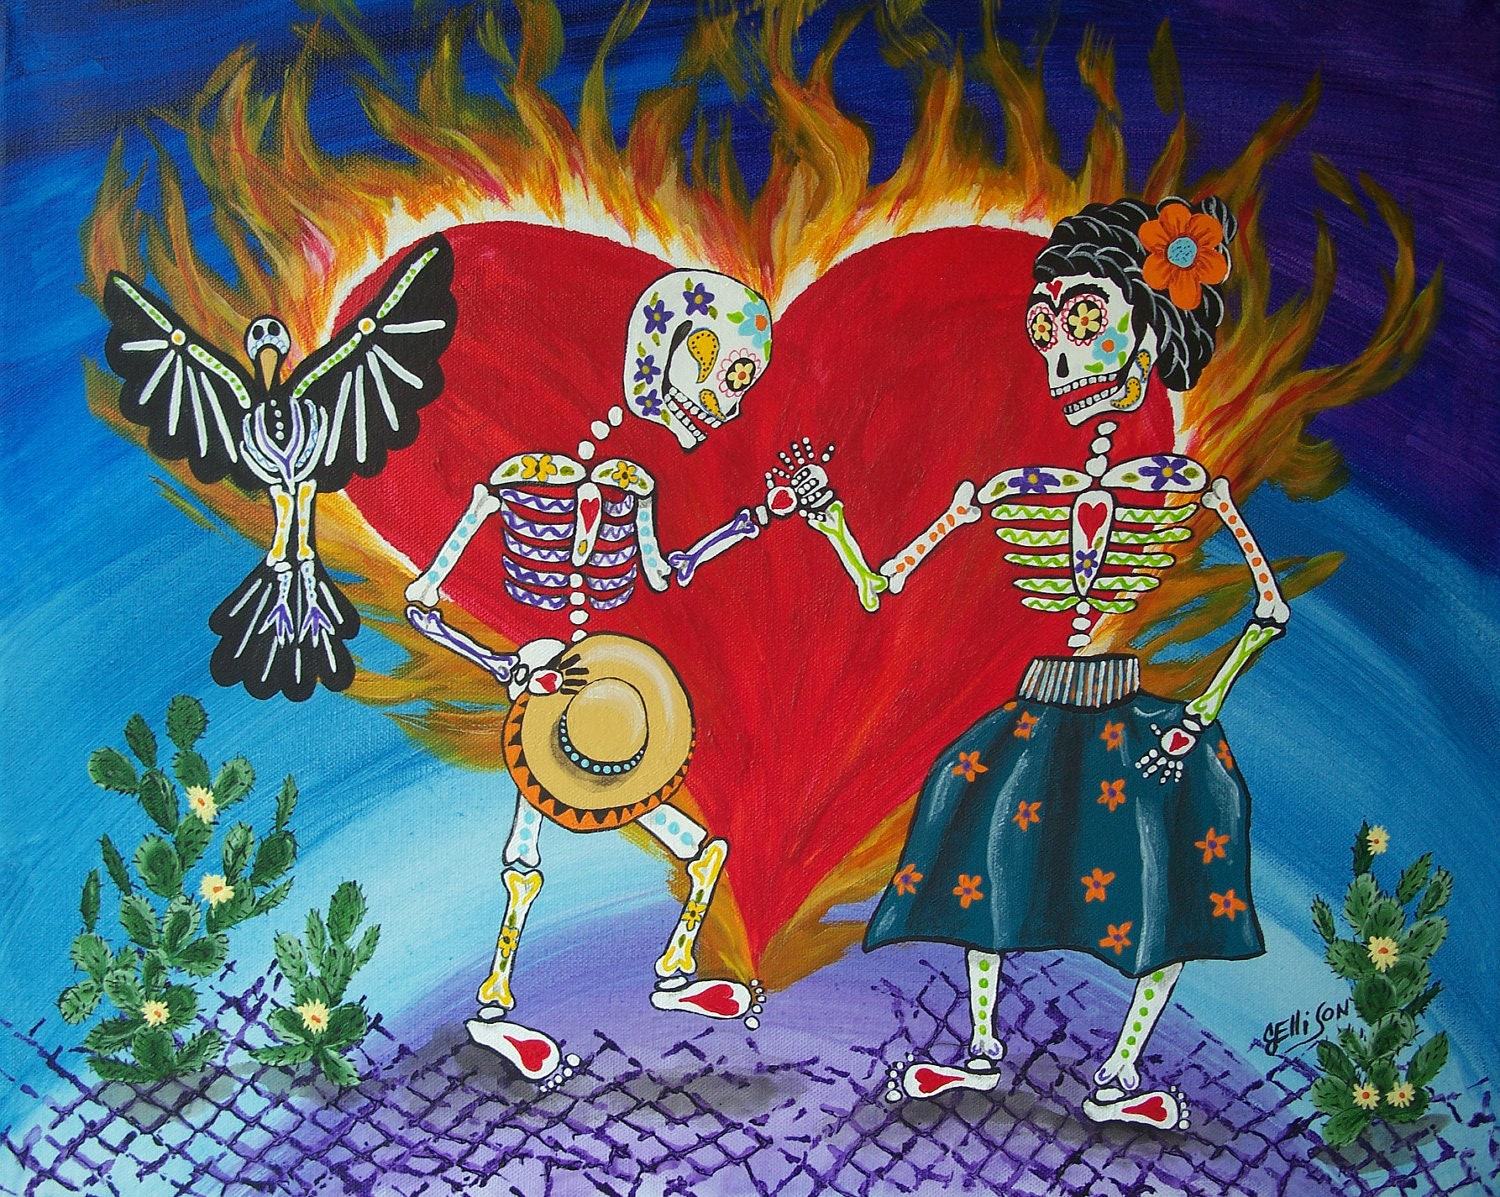 Day of the dead burning love frida kahlo diego by jellisonart for Diego rivera day of the dead mural